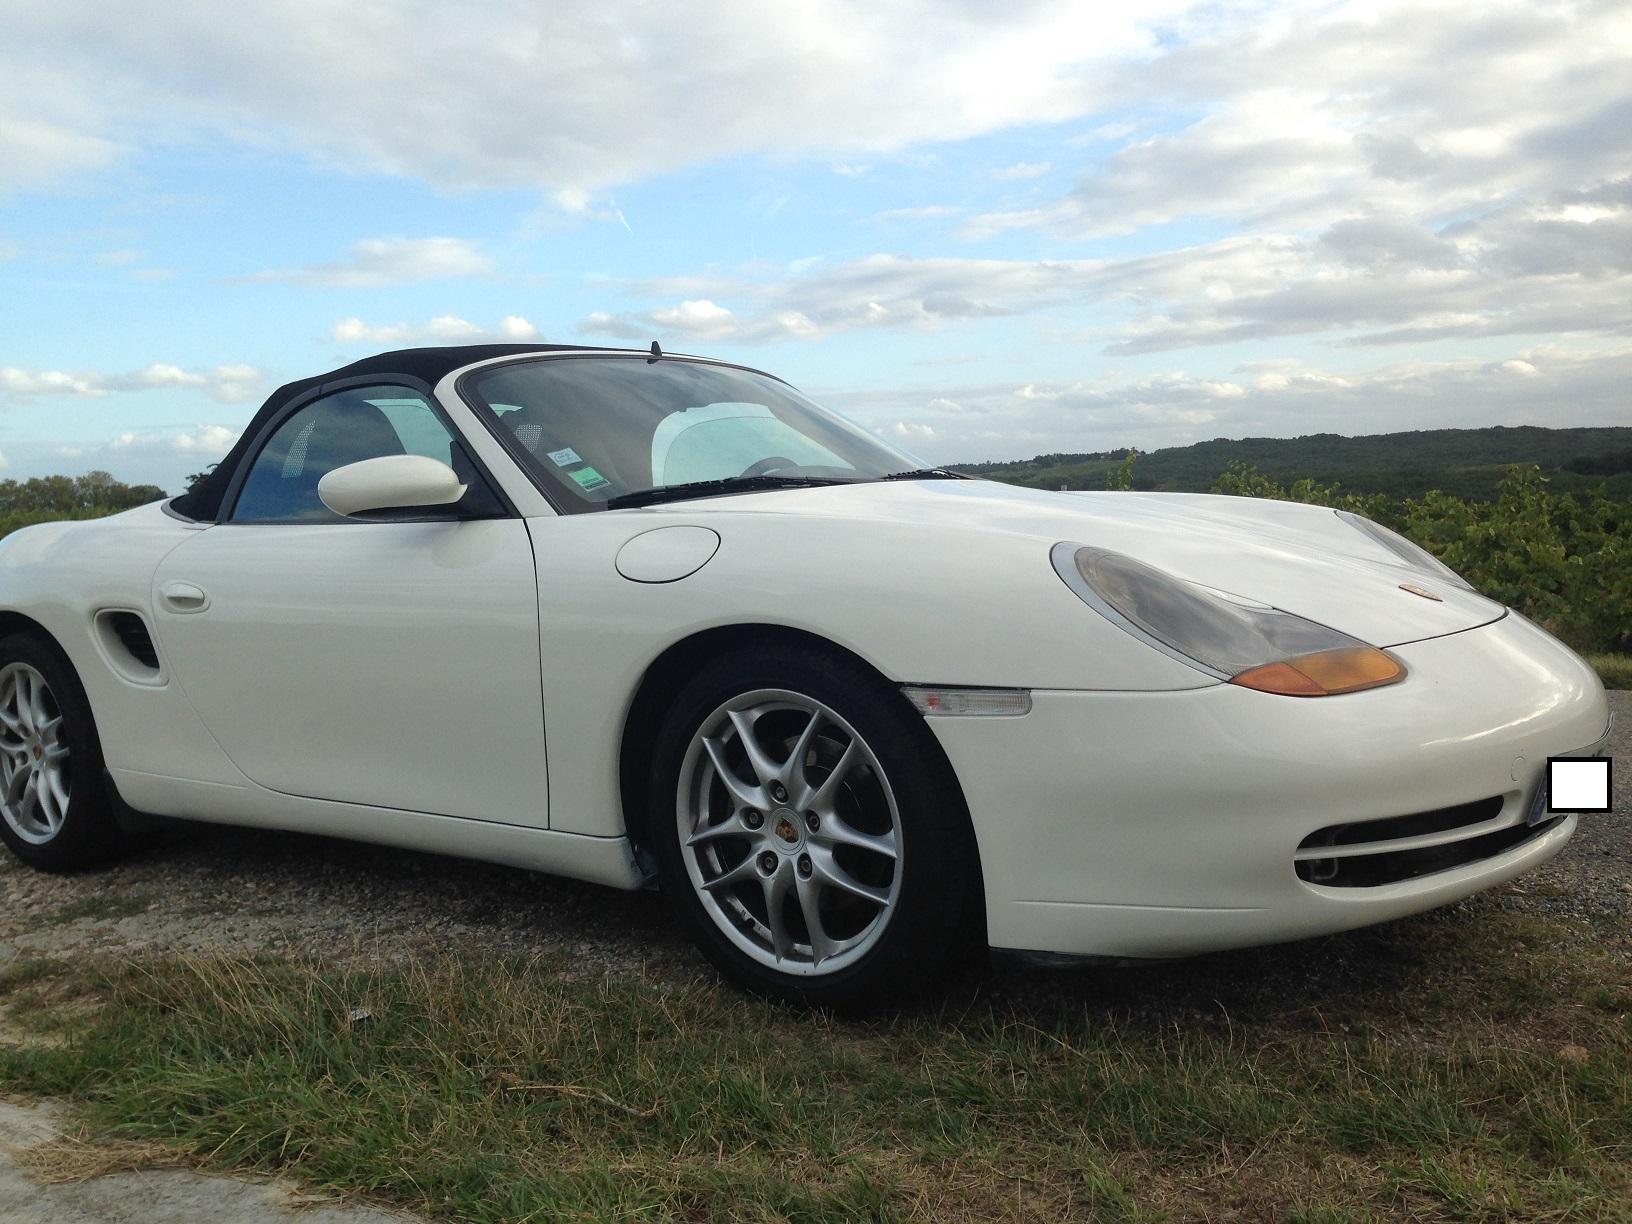 boxster 2,7L an 2000